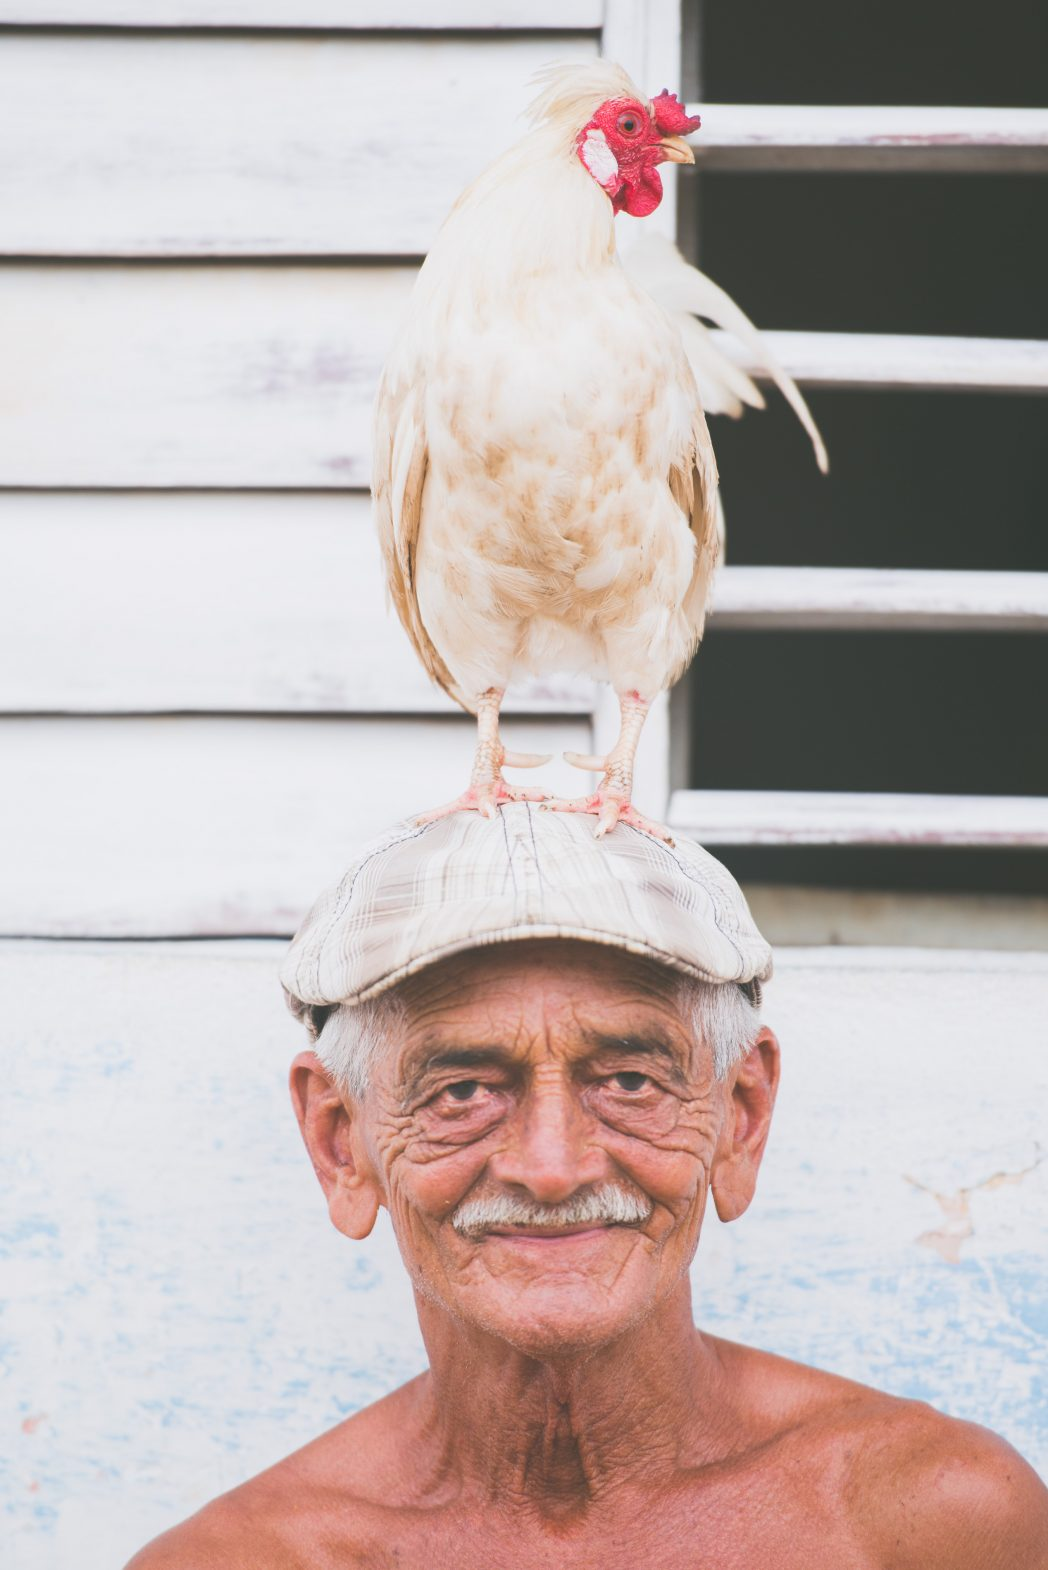 A man shows how his chicken can sit on his head, in the town of Trinidad, Cuba.